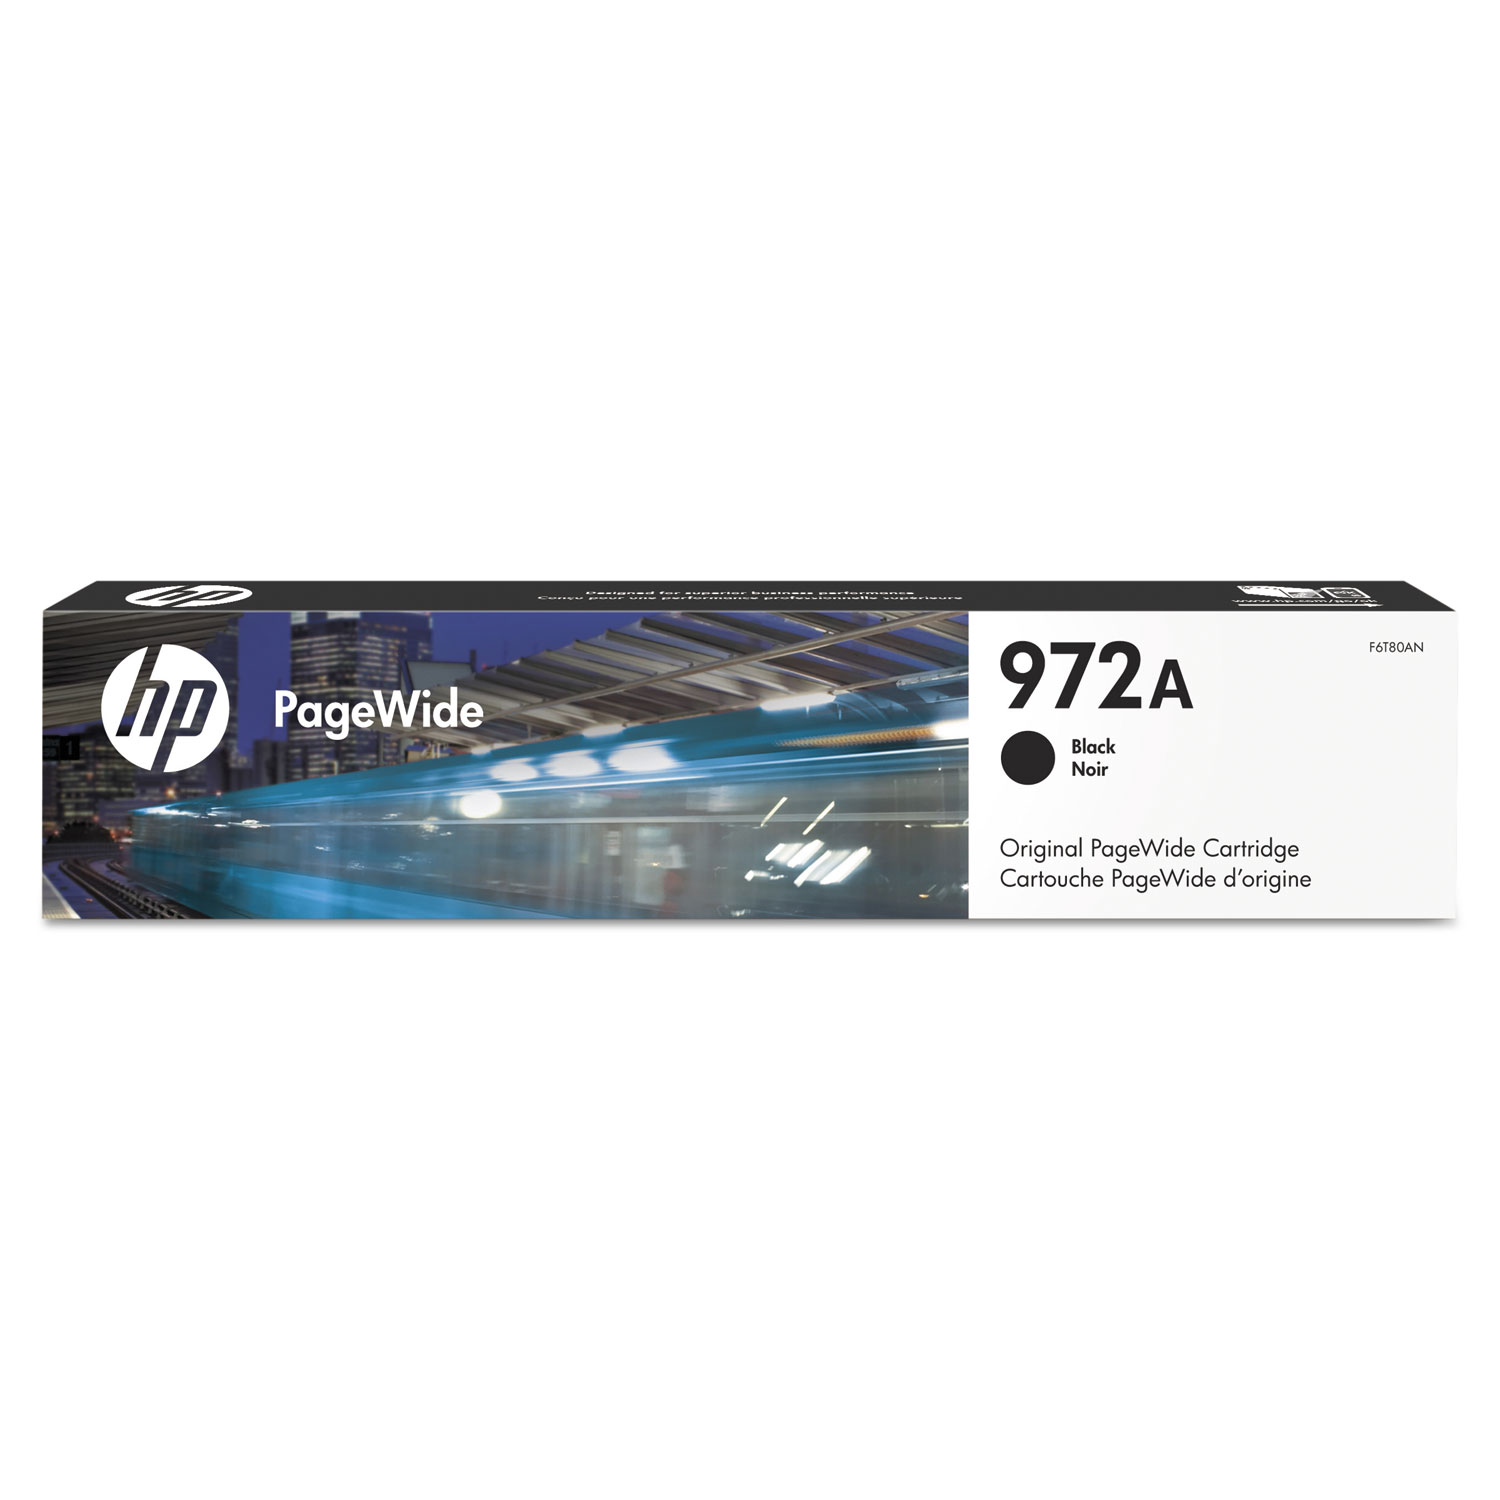 HP 972A F6T80AN Black Original Ink Cartridge